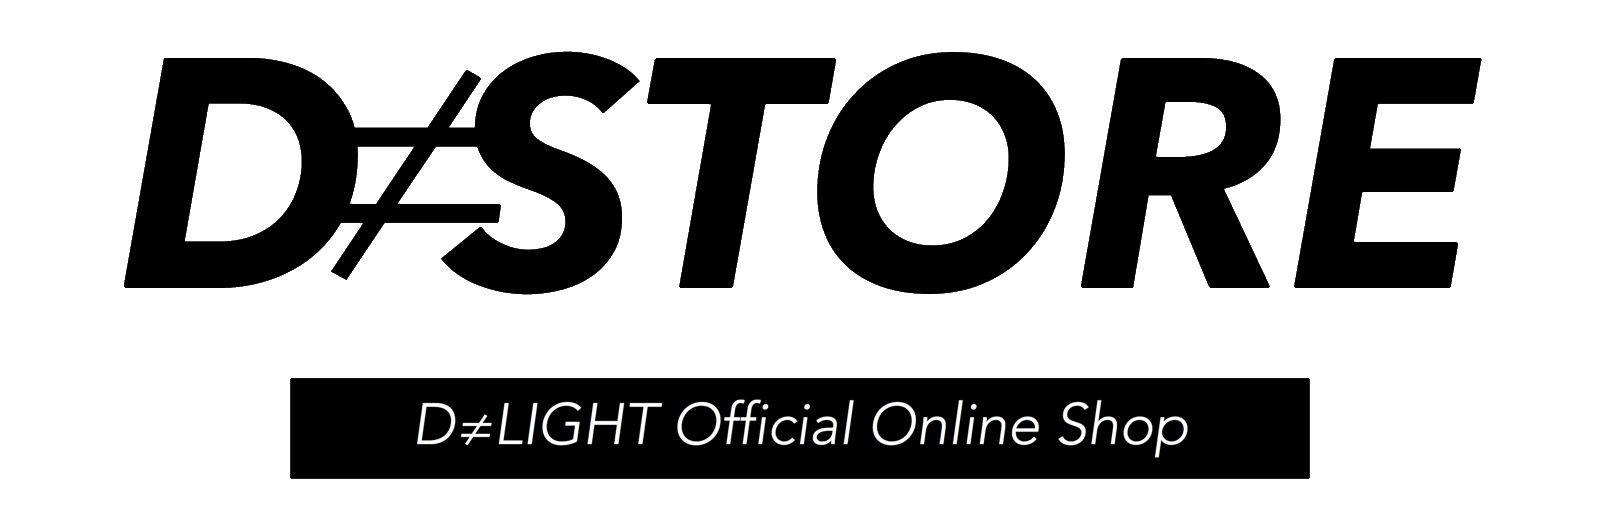 D≠STORE | D≠LIGHT Official Online Shop